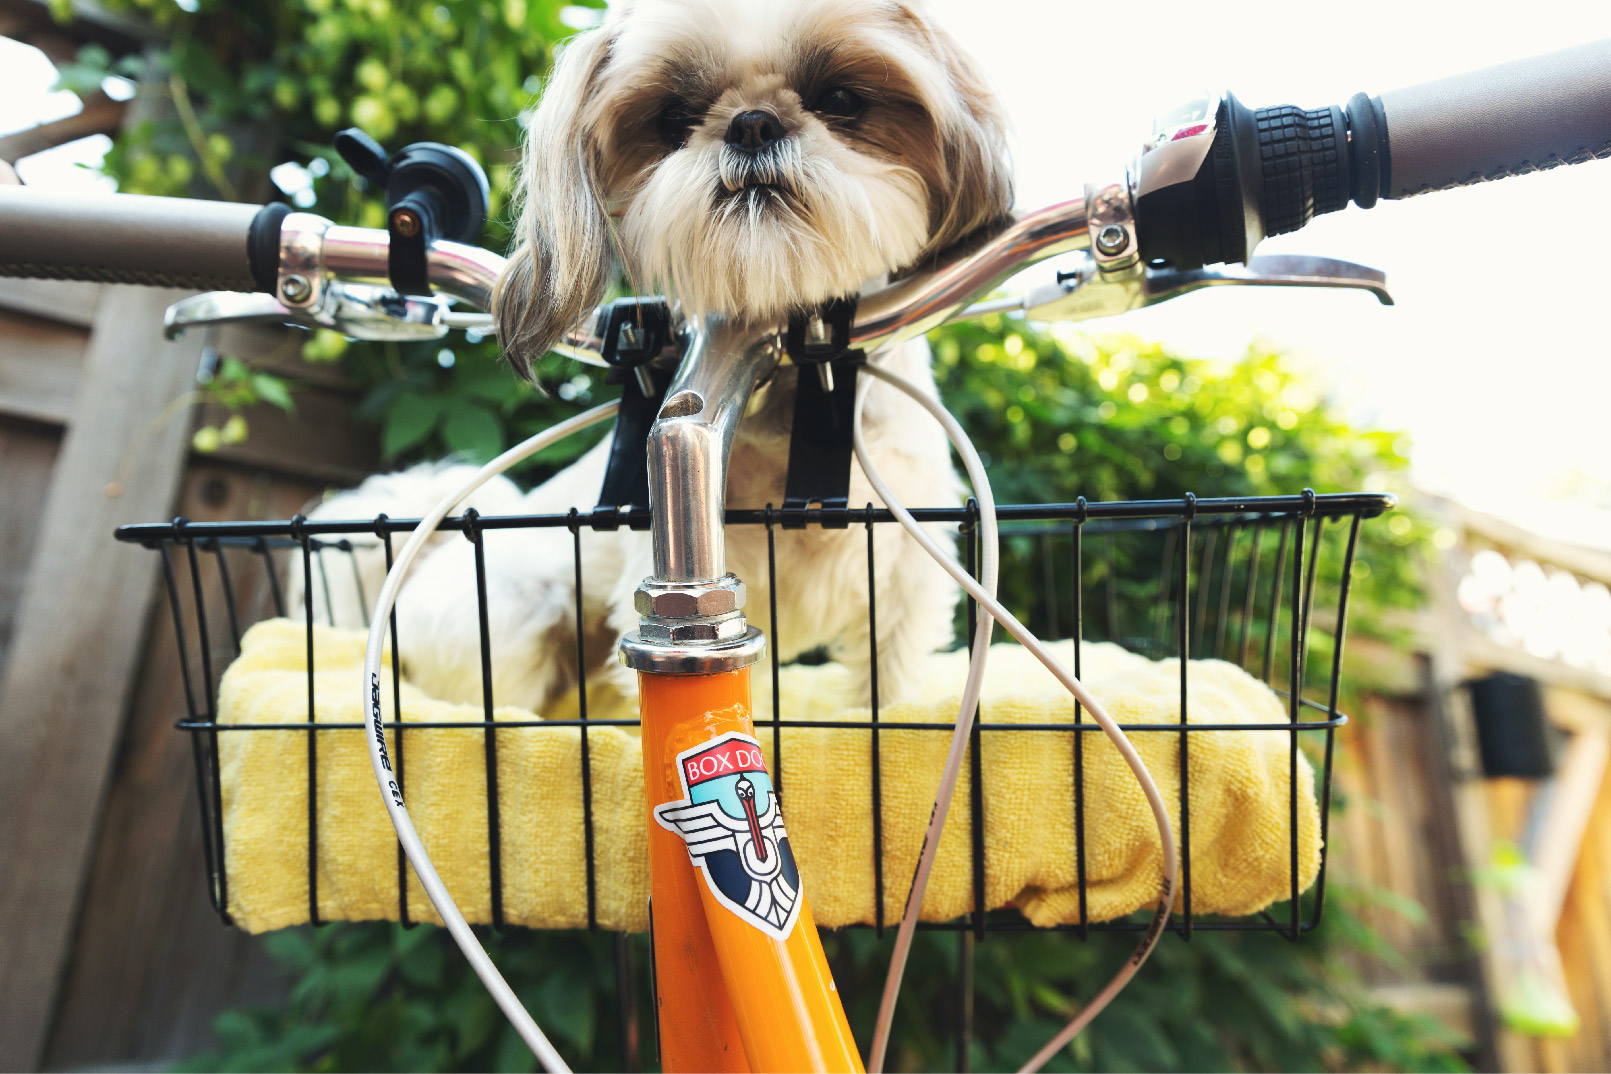 Small Lhasa Apso dog sitting in front of the handles in a bike basket.